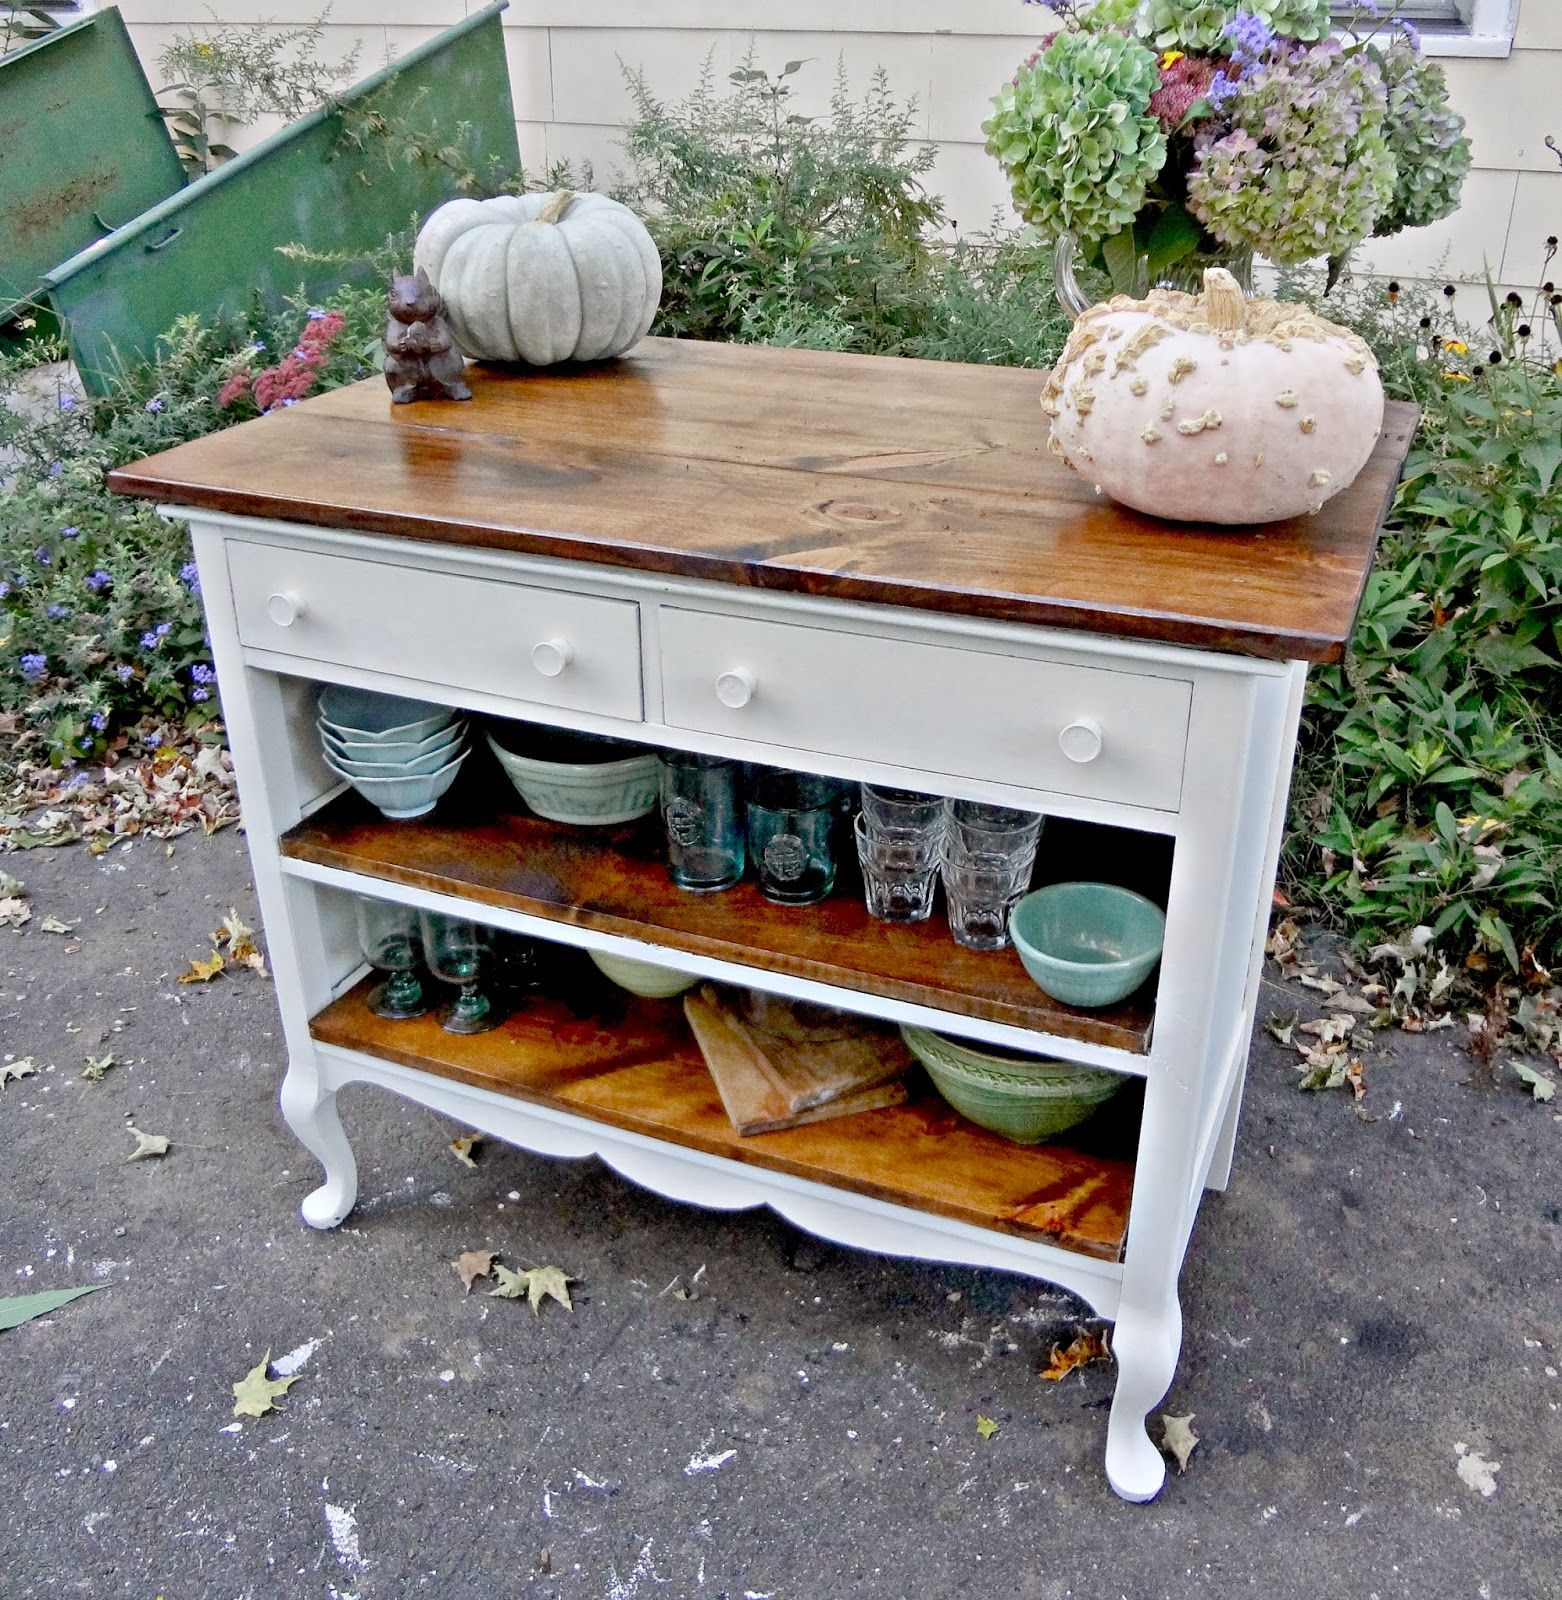 Heir and space antique dresser turned kitchen island furniture